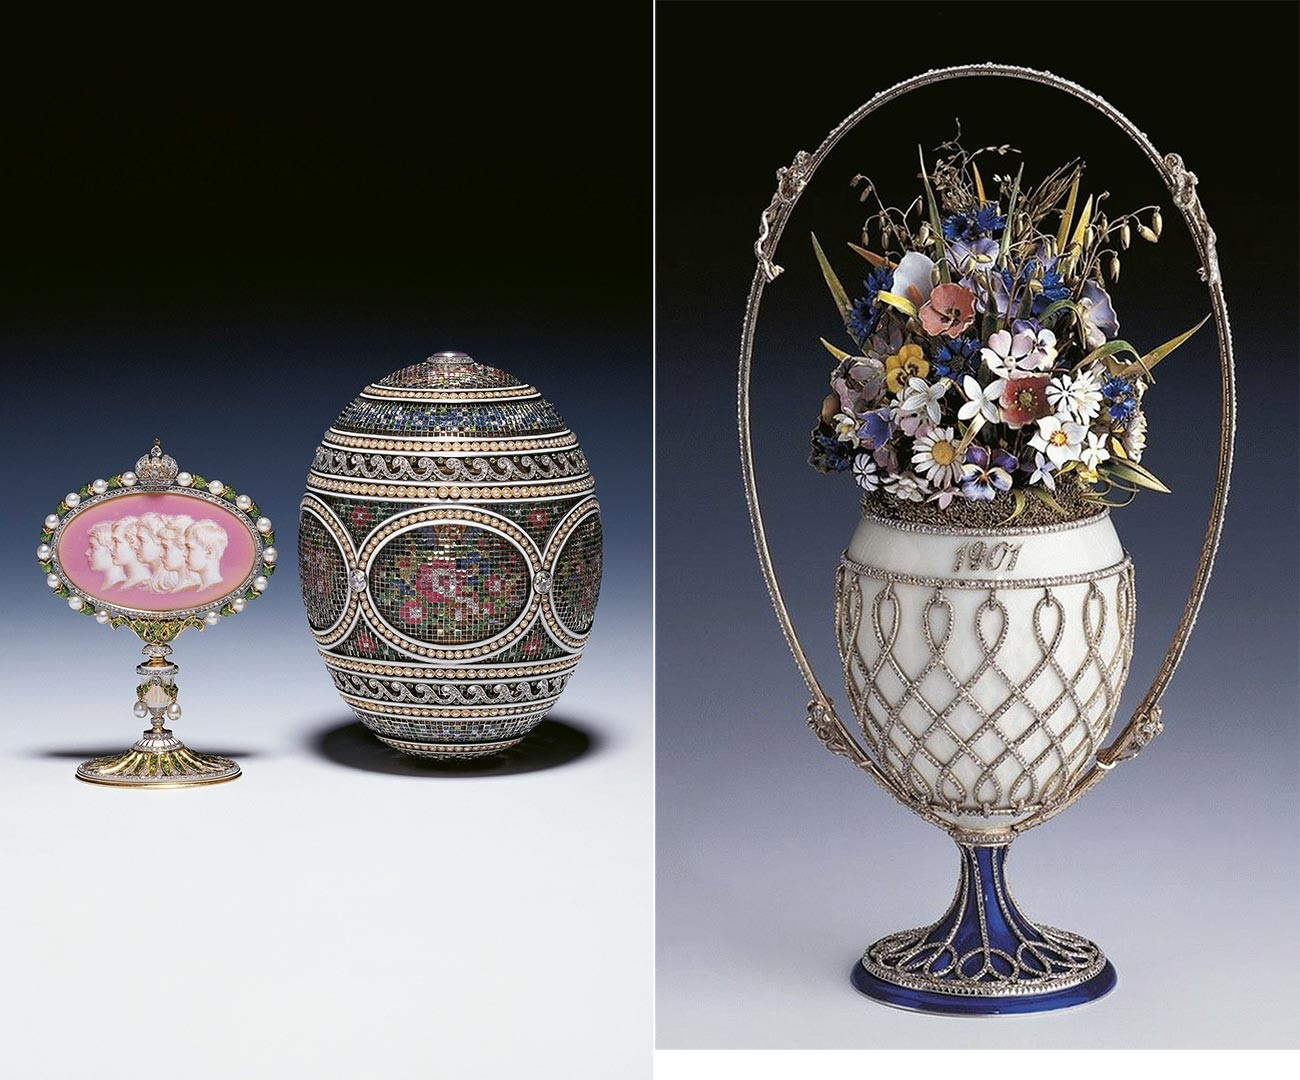 Faberge eggs: The 'Mosaic' (left) and the 'Basket of Wildflowers'